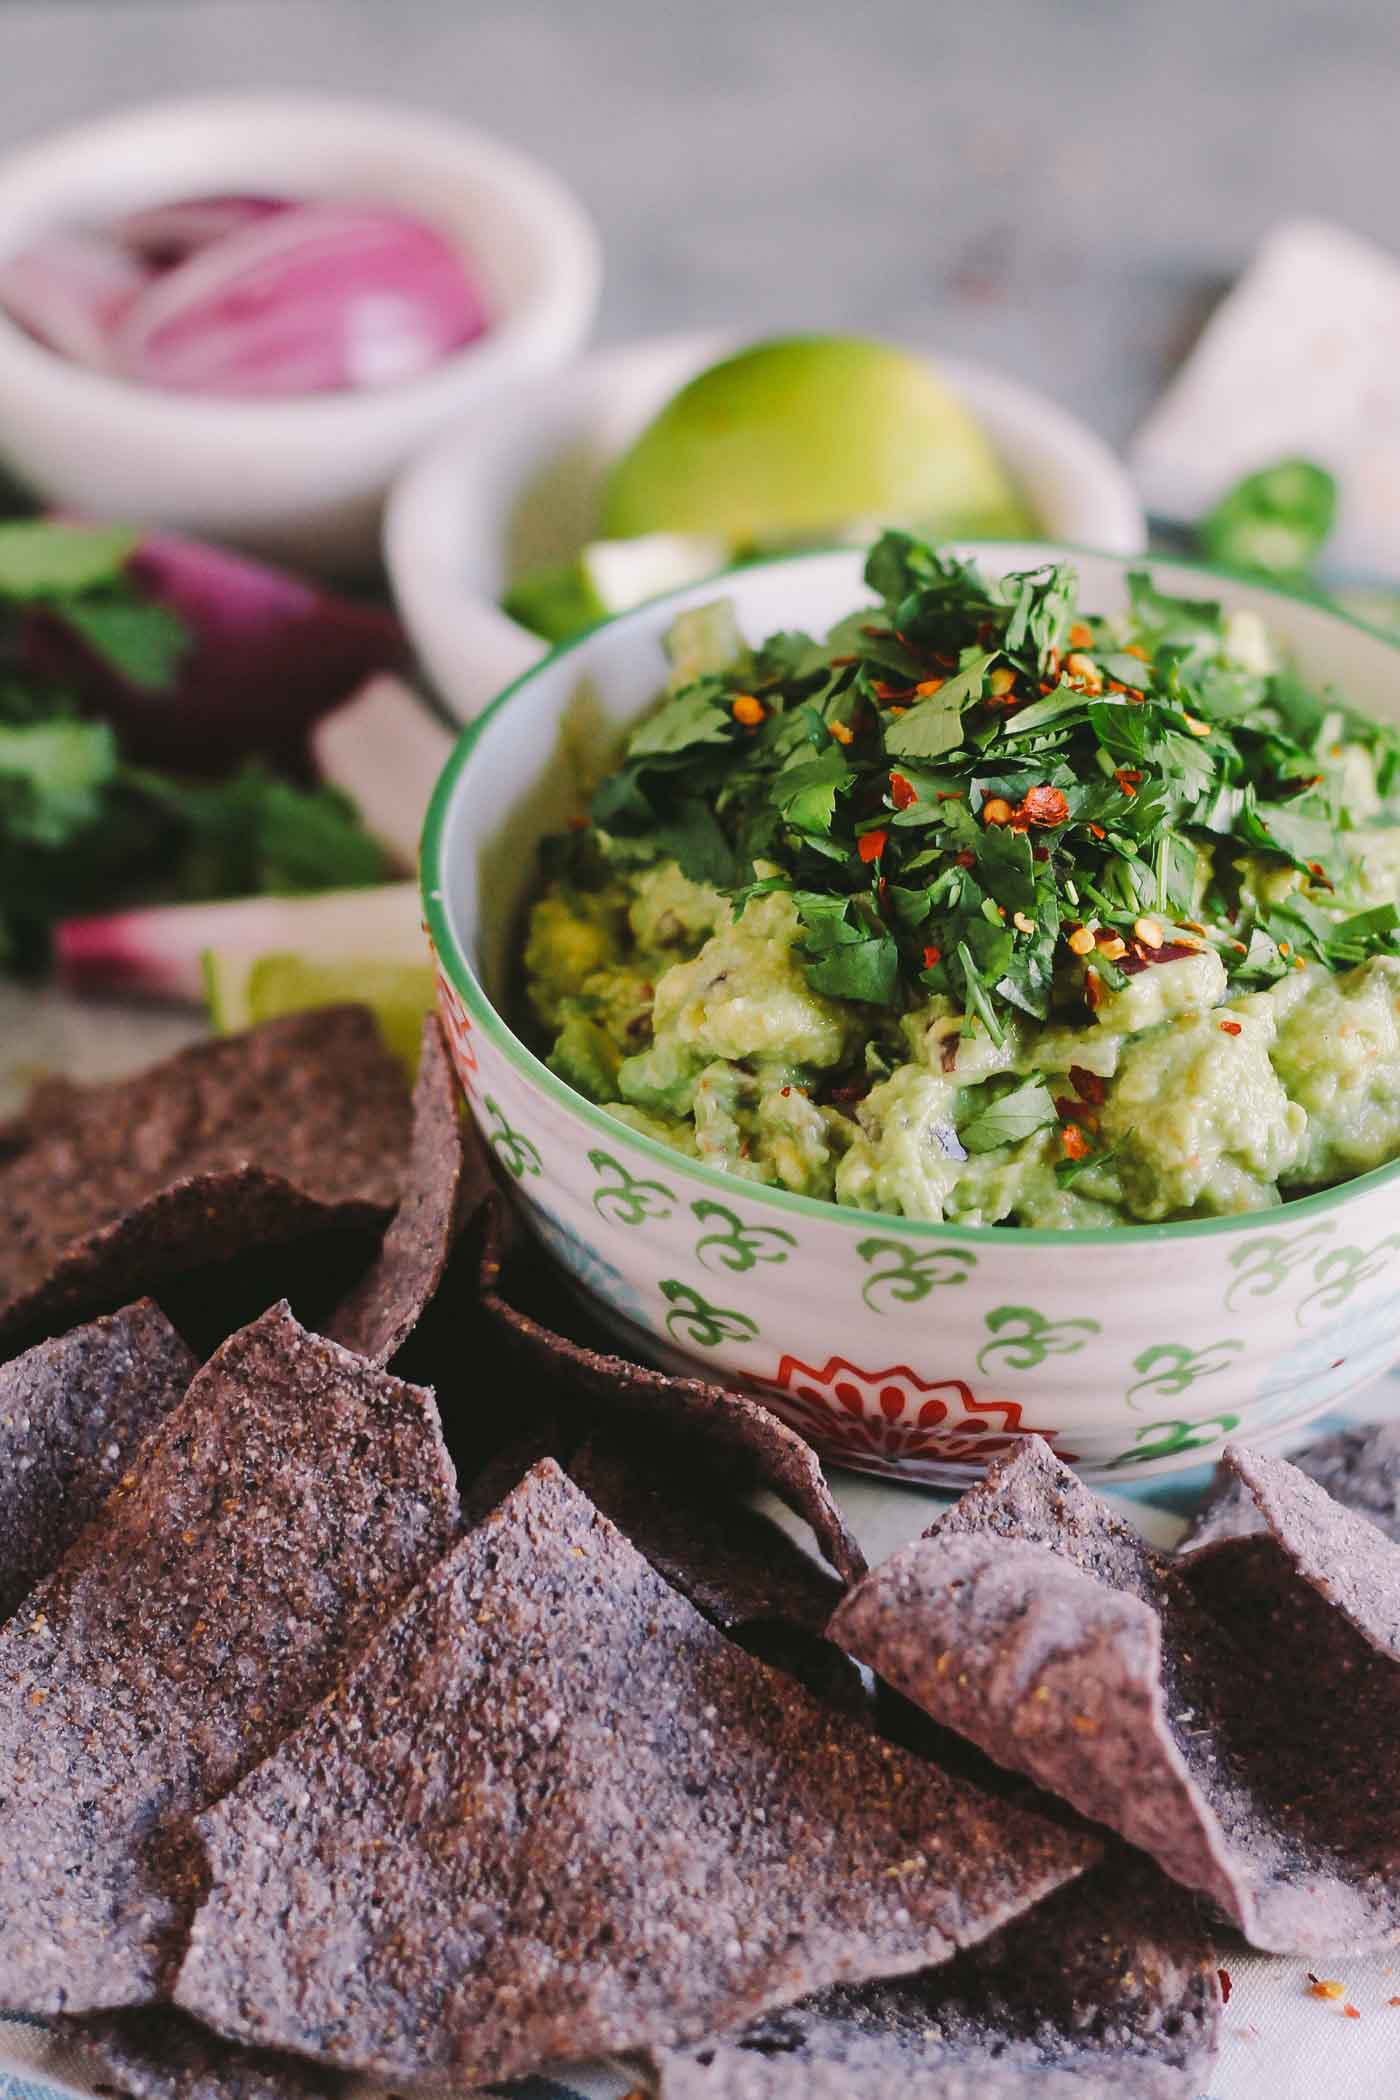 a foolproof, restaurant-worthy method to making the best guacamole at home, every single time. this guacamole recipe will soon become a staple recipe in your house & don't be surprised when all your friends start requesting it whenever you see them! | best guacamole recipe, mexican recipe, cinco de mayo idea, appetizer, snack |